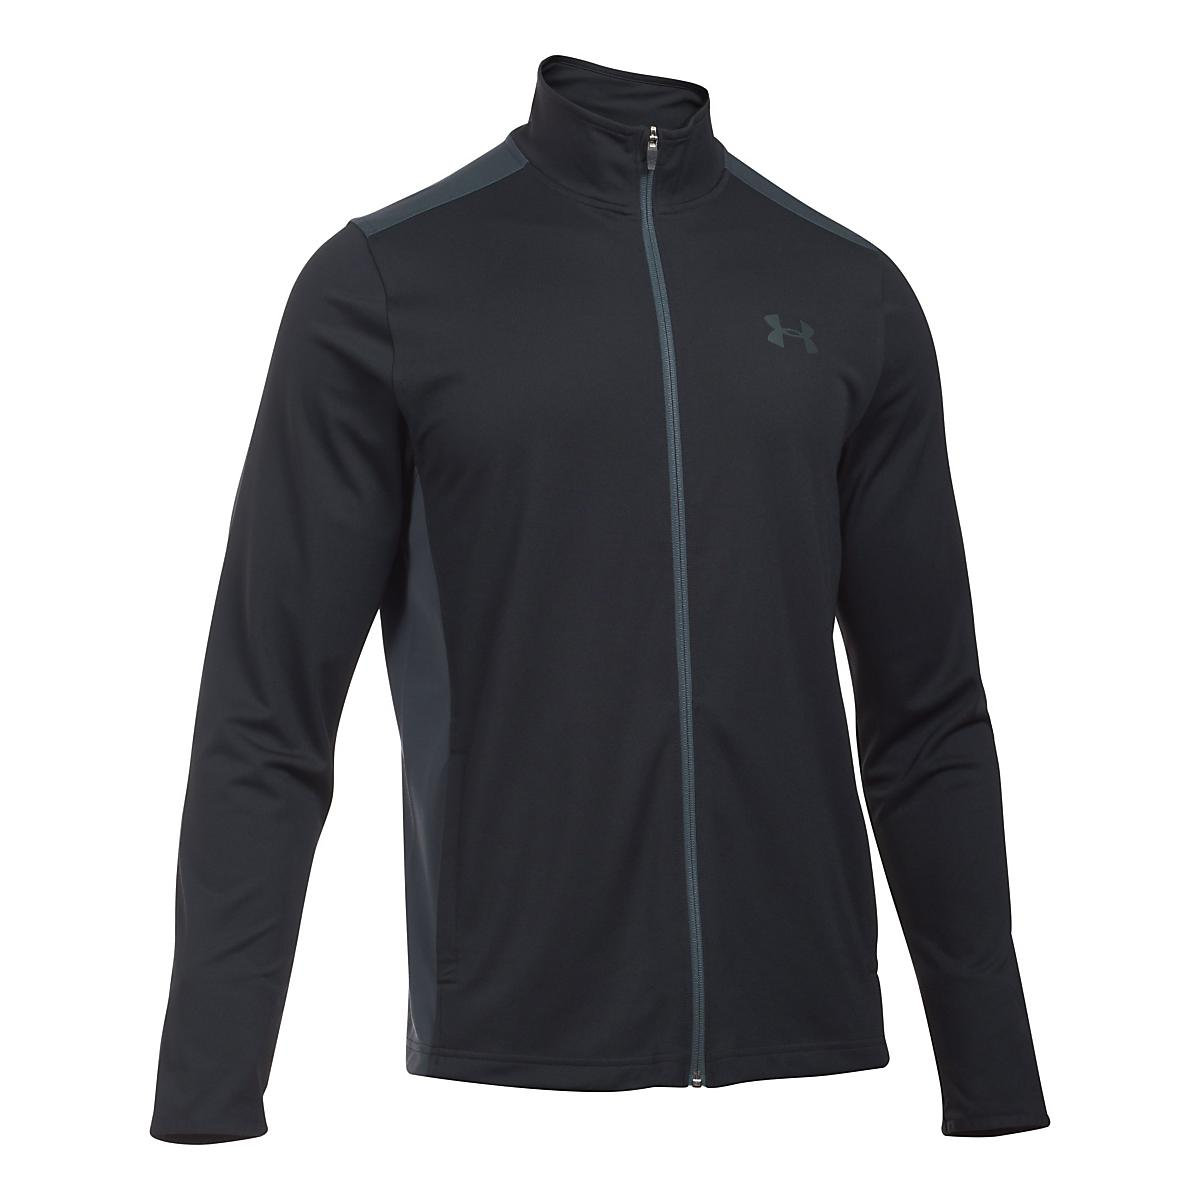 Men's Under Armour�Maverick Jacket